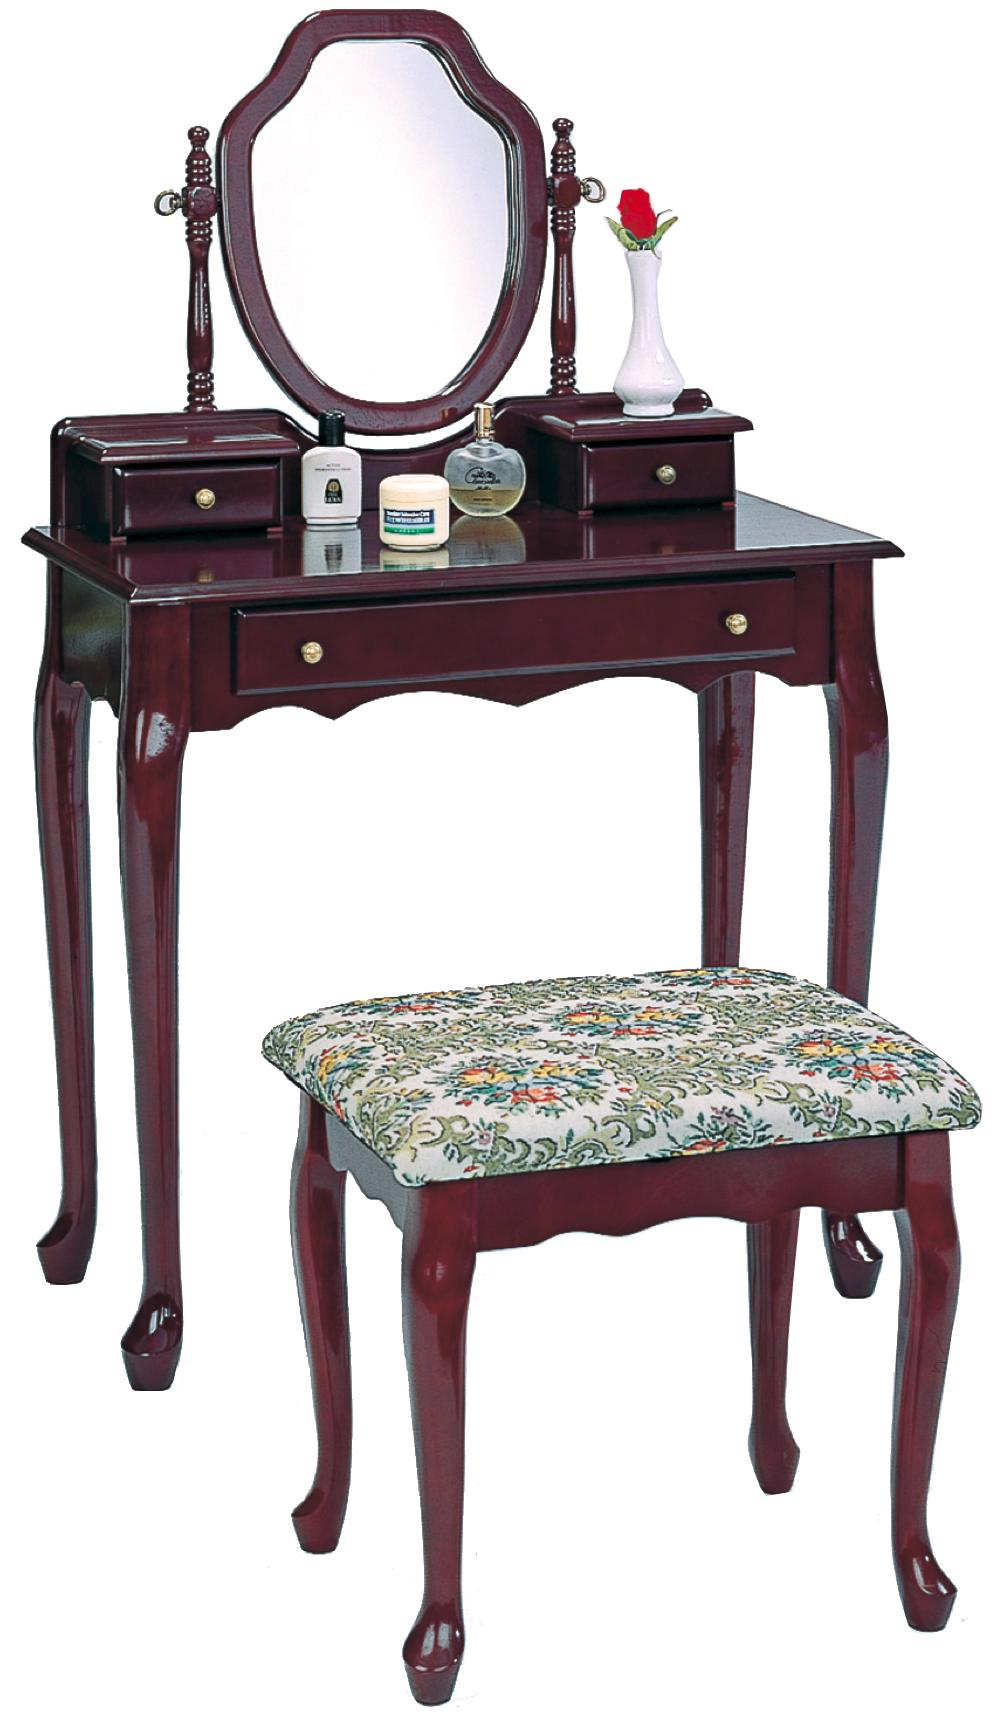 Vanity bench set dark wooden dressing table stool 3441 coaster for Vanity table set